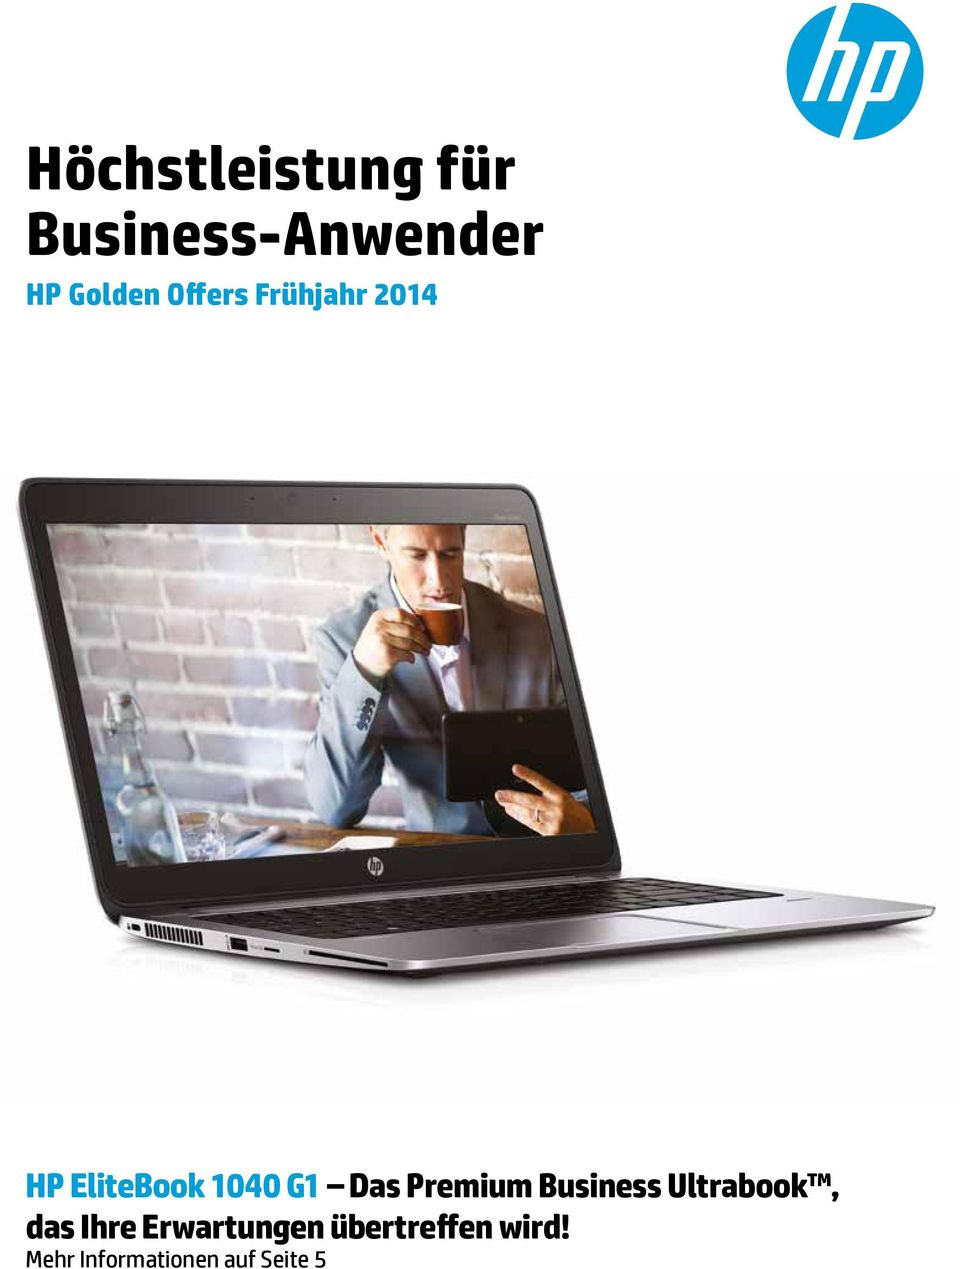 Premium Business Ultrabook, das Ihre